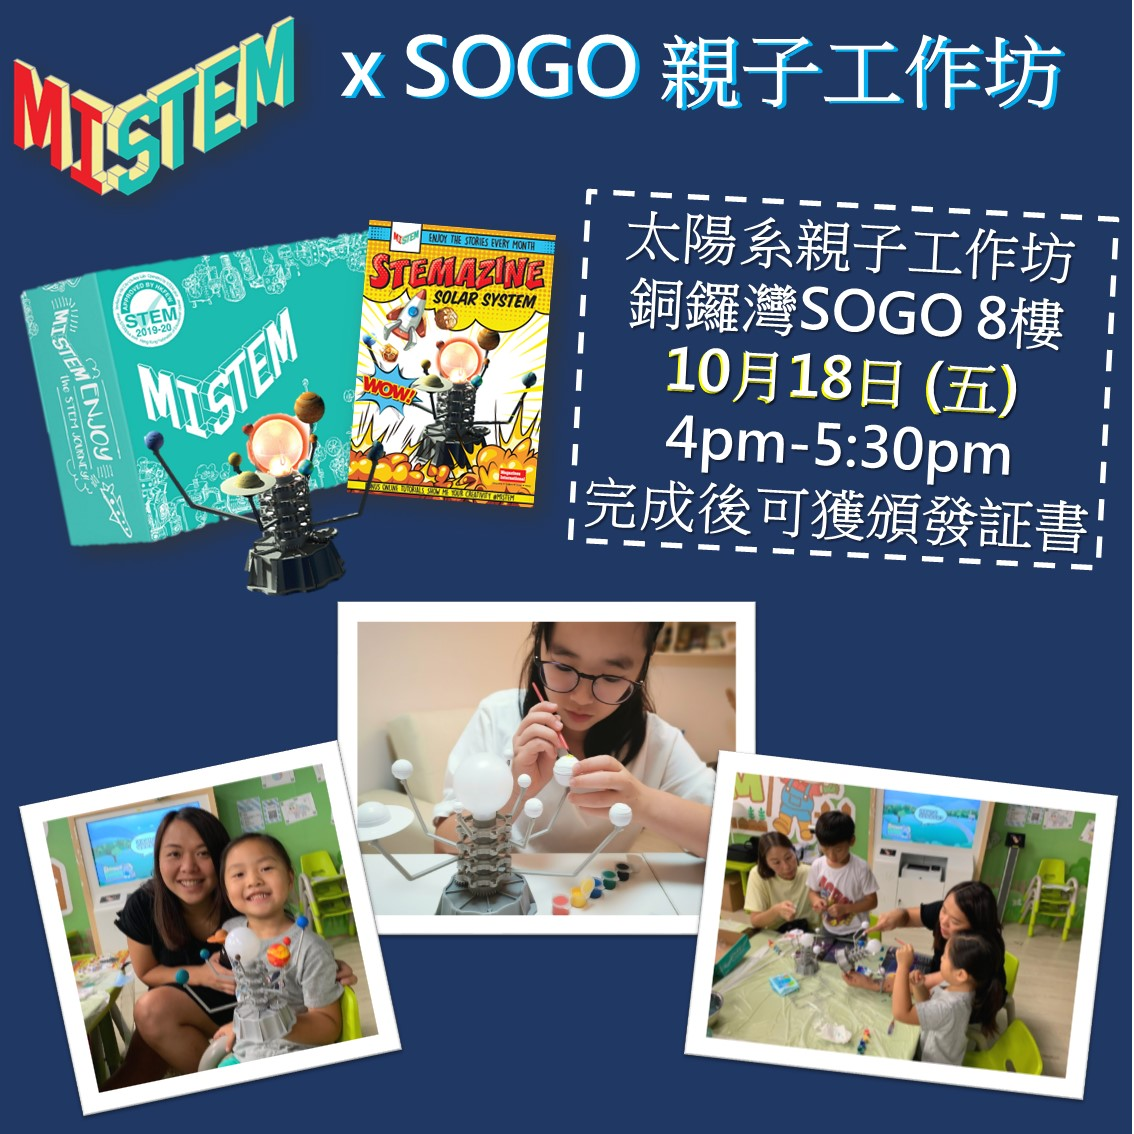 18/10/2019 (Fri) MI STEM x SOGO Workshop Image